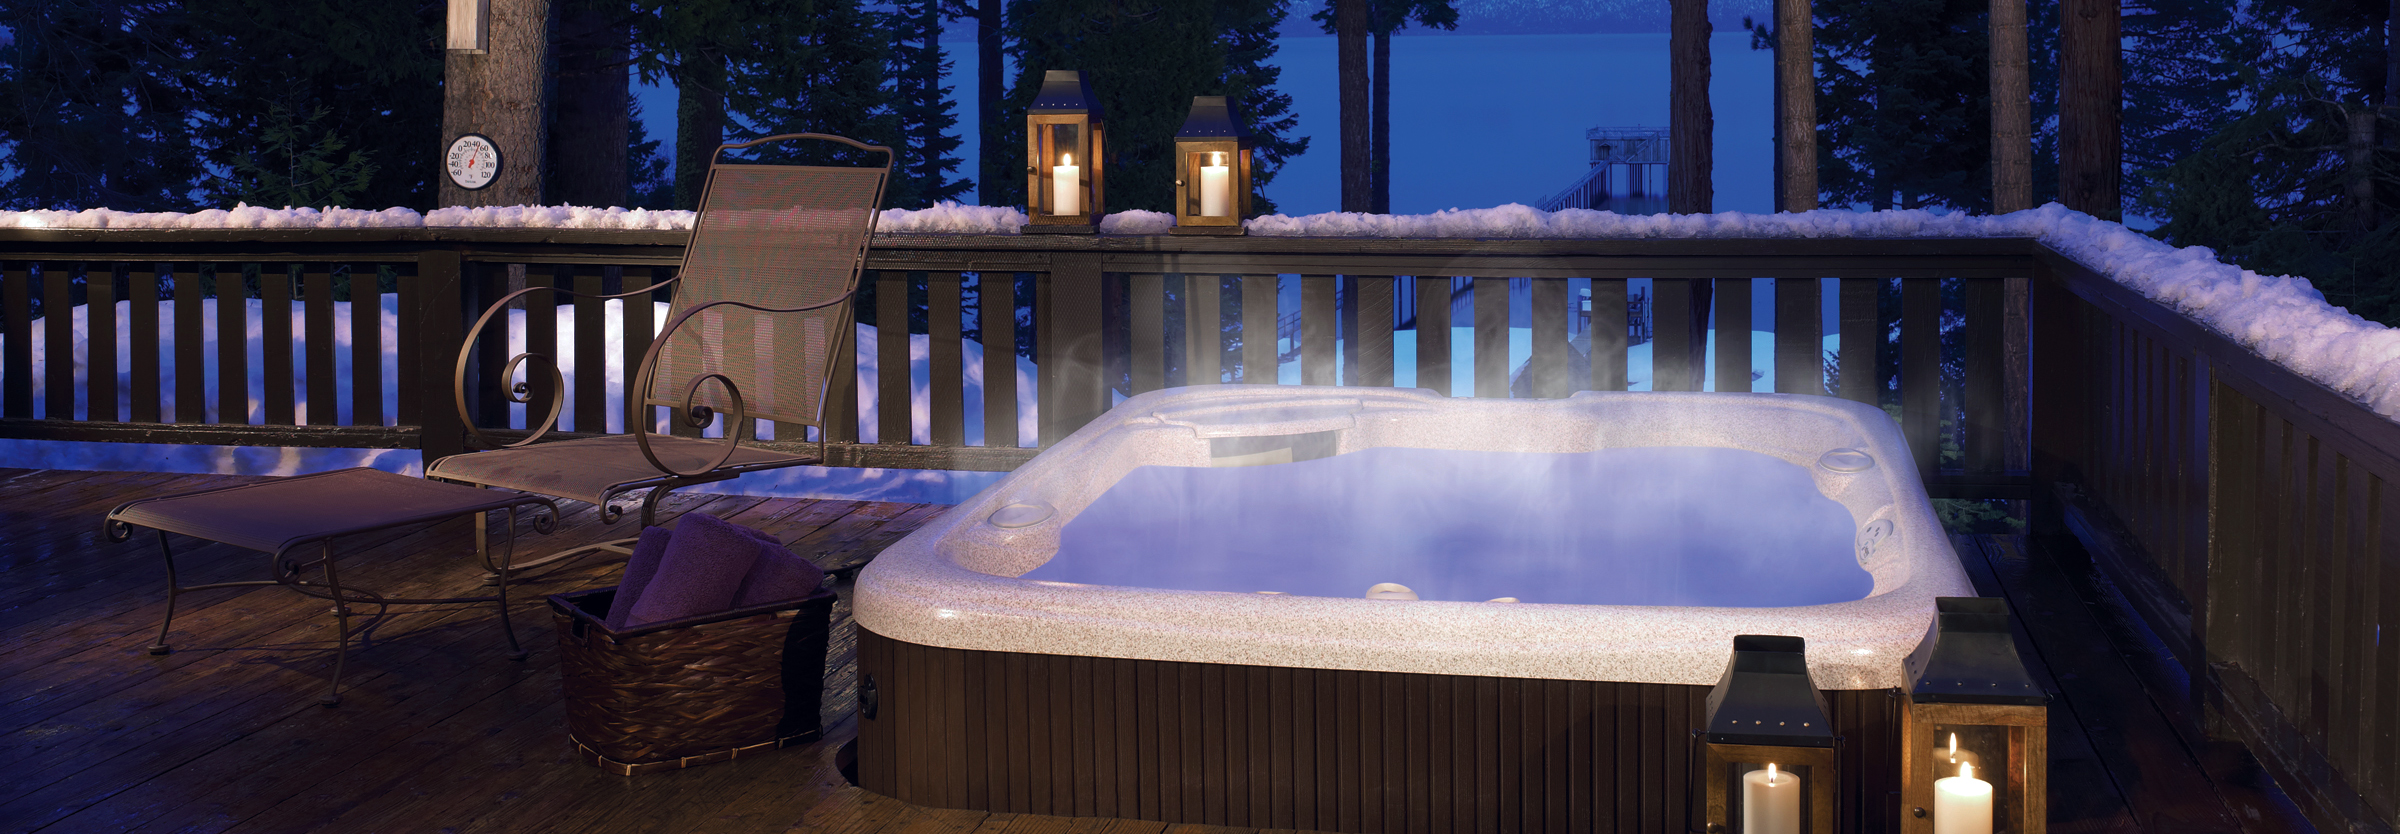 Winter Tips for Your Hot Tub